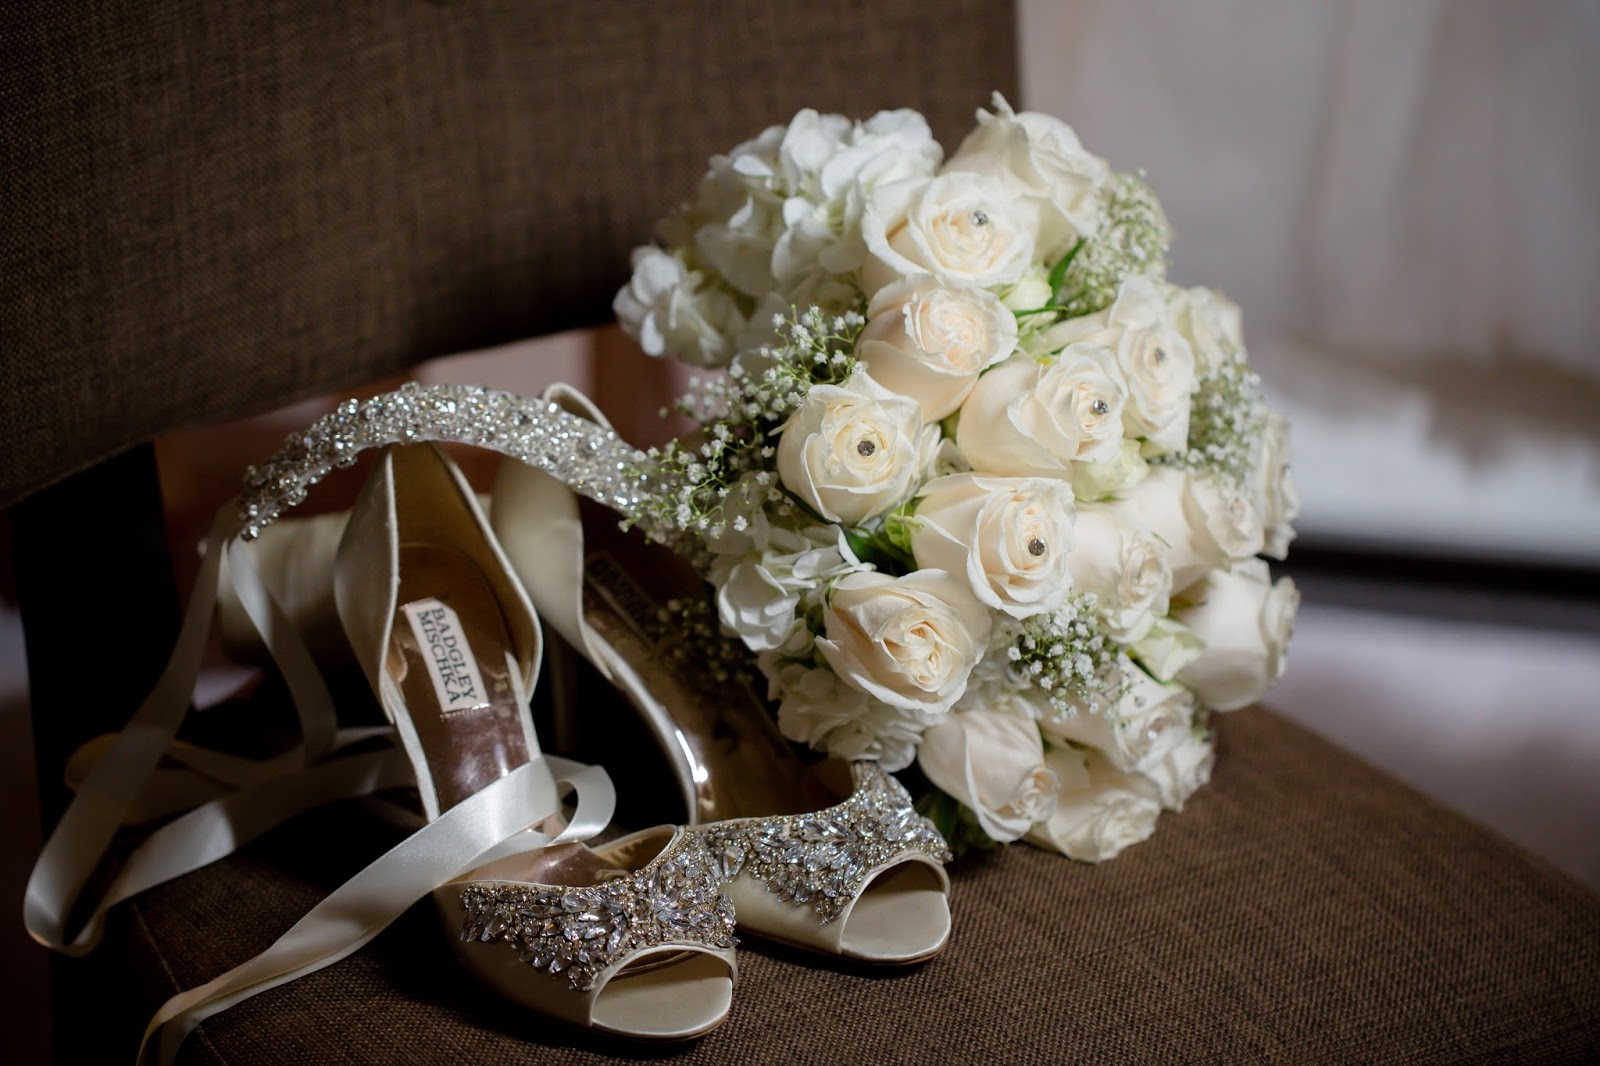 Wedding Bouquet with Bride's Shoes